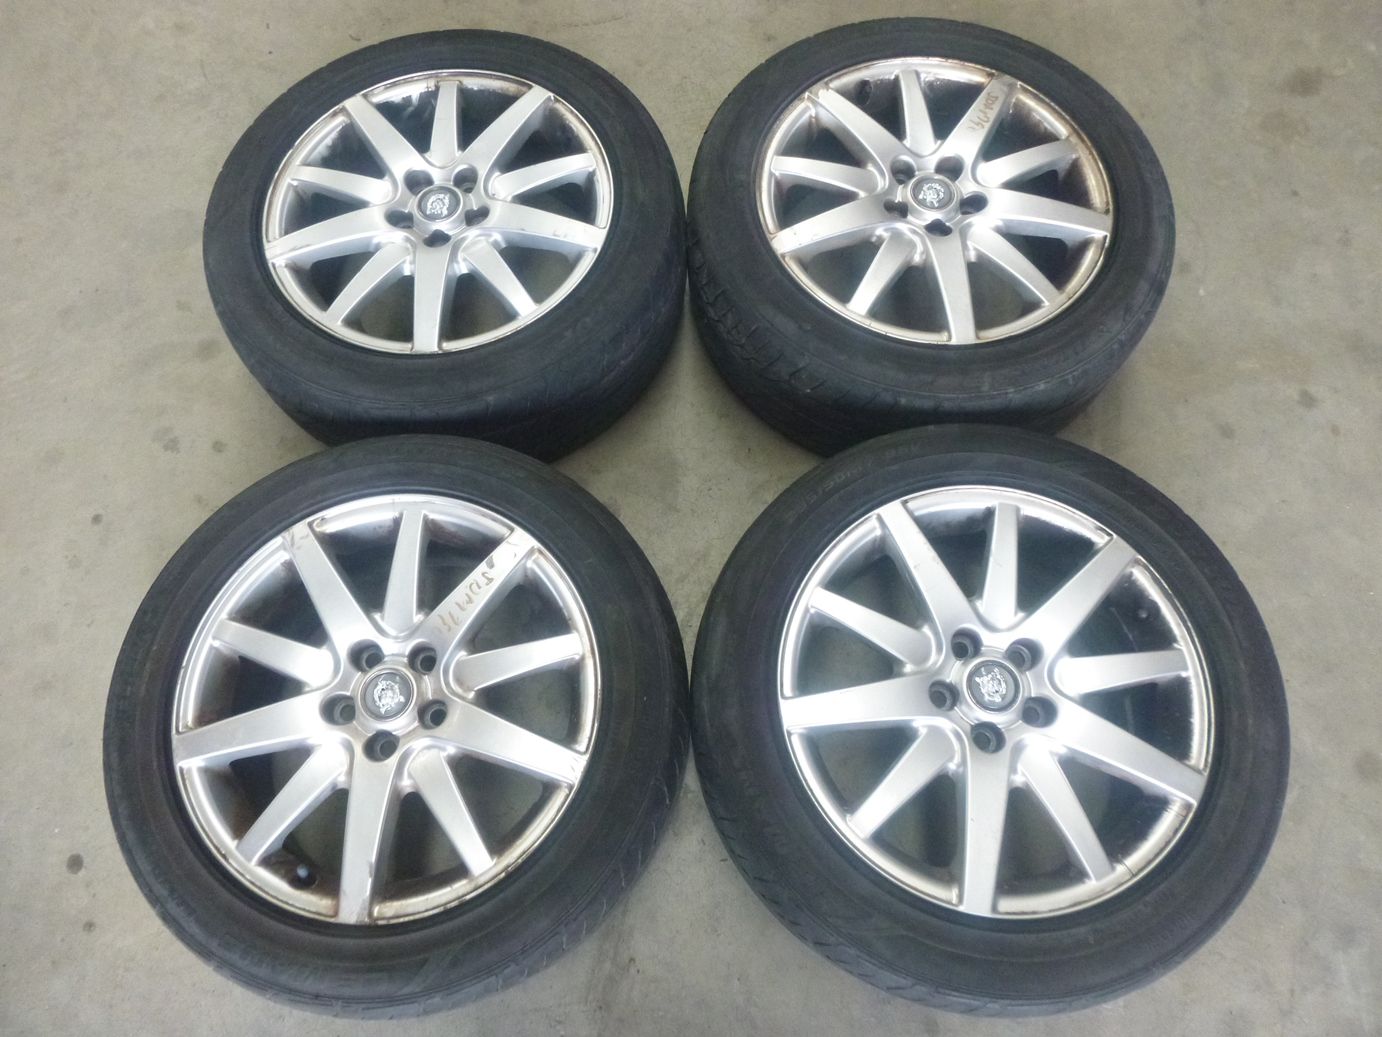 Jaguar-S-Type-Factory-17-x-7-5-Alloy-Wheels-Set-J059